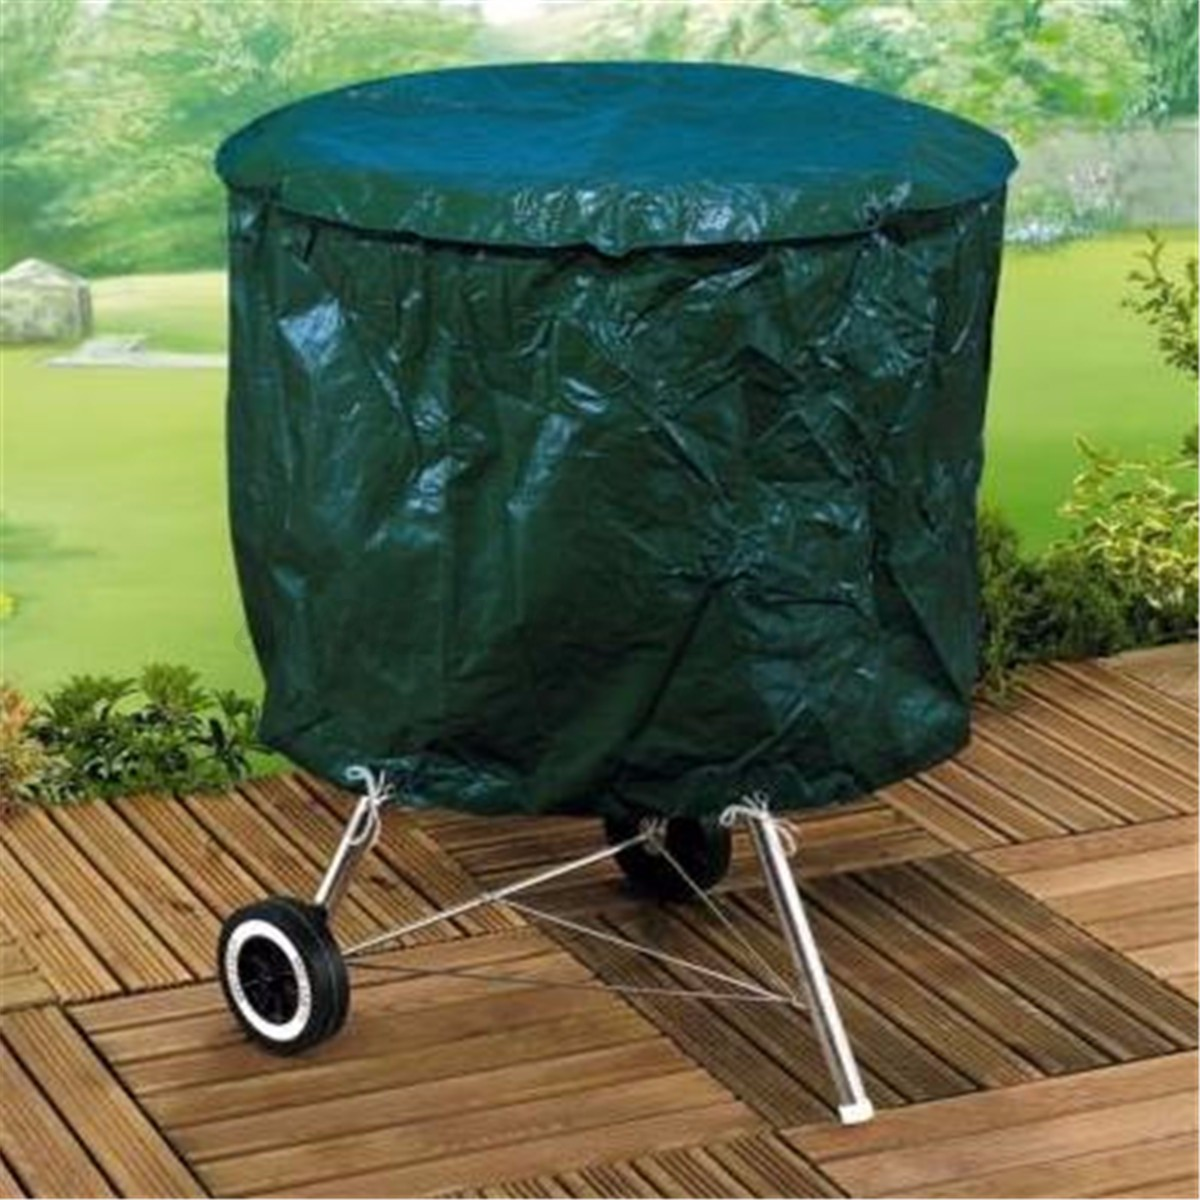 Waterproof Furniture Cover For Garden Outdoor Patio Bench ... on Patio Cover Ideas For Rain id=19948